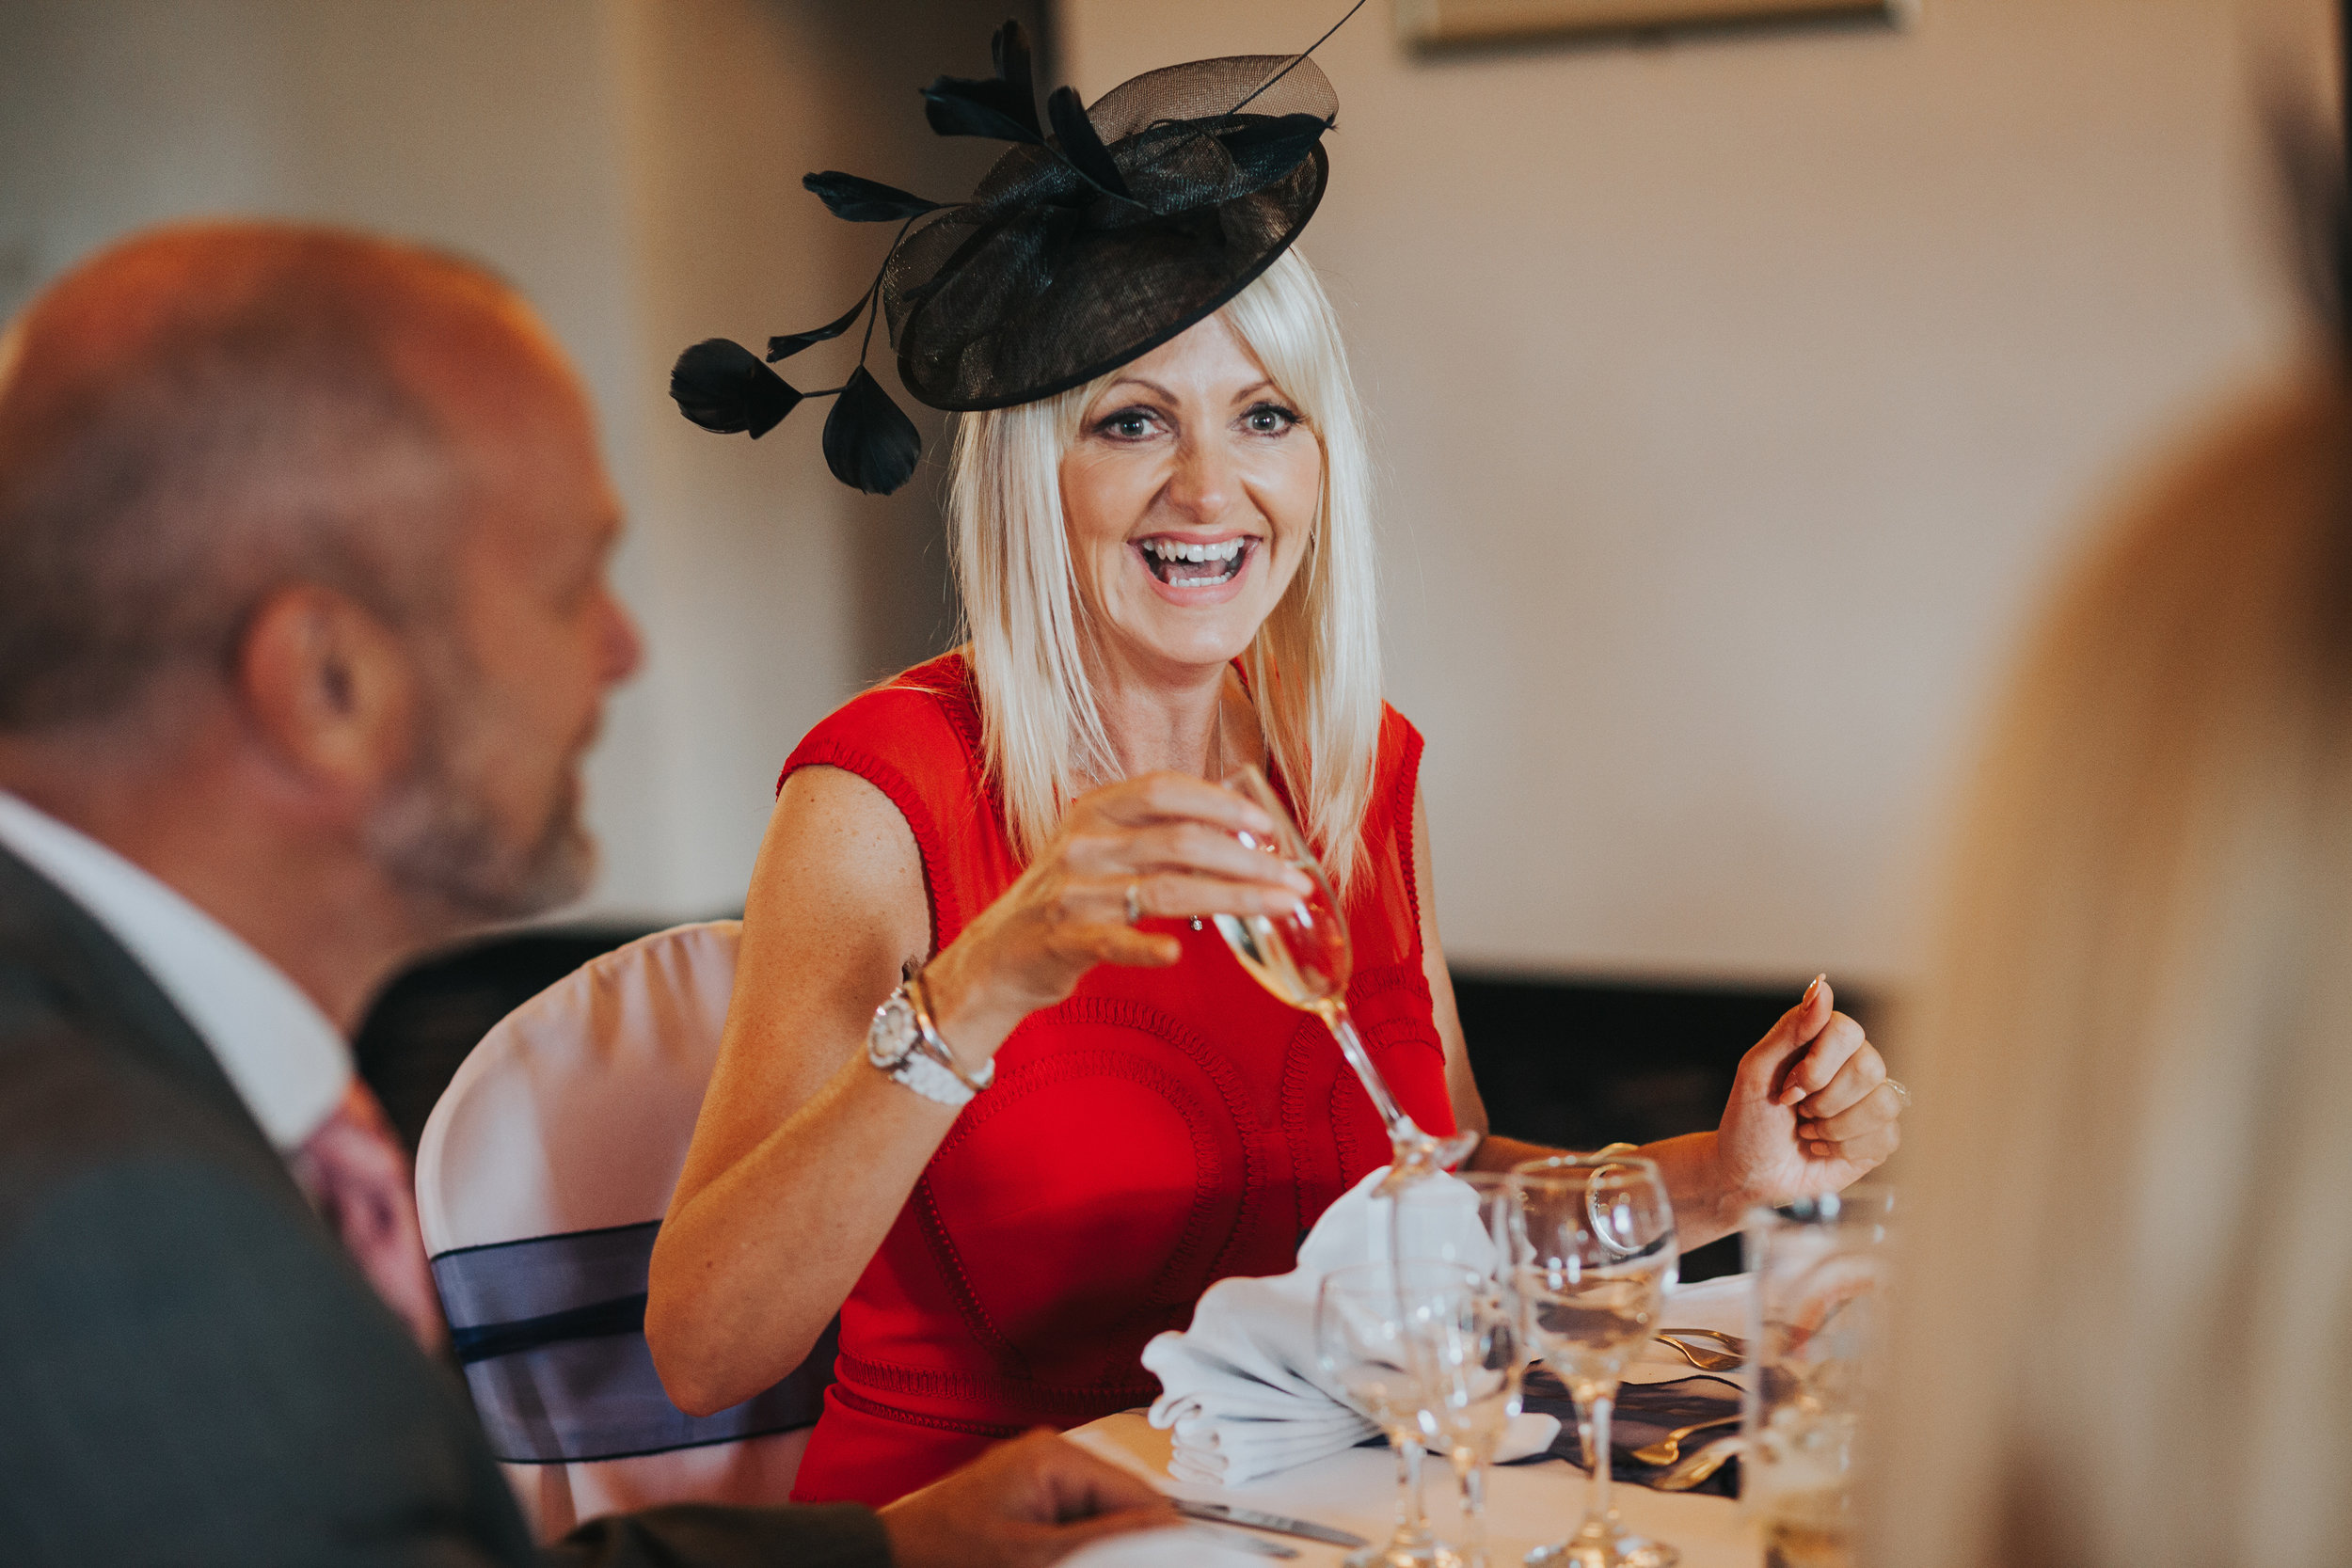 Wedding guest wears a red dress and black hat while laughing.